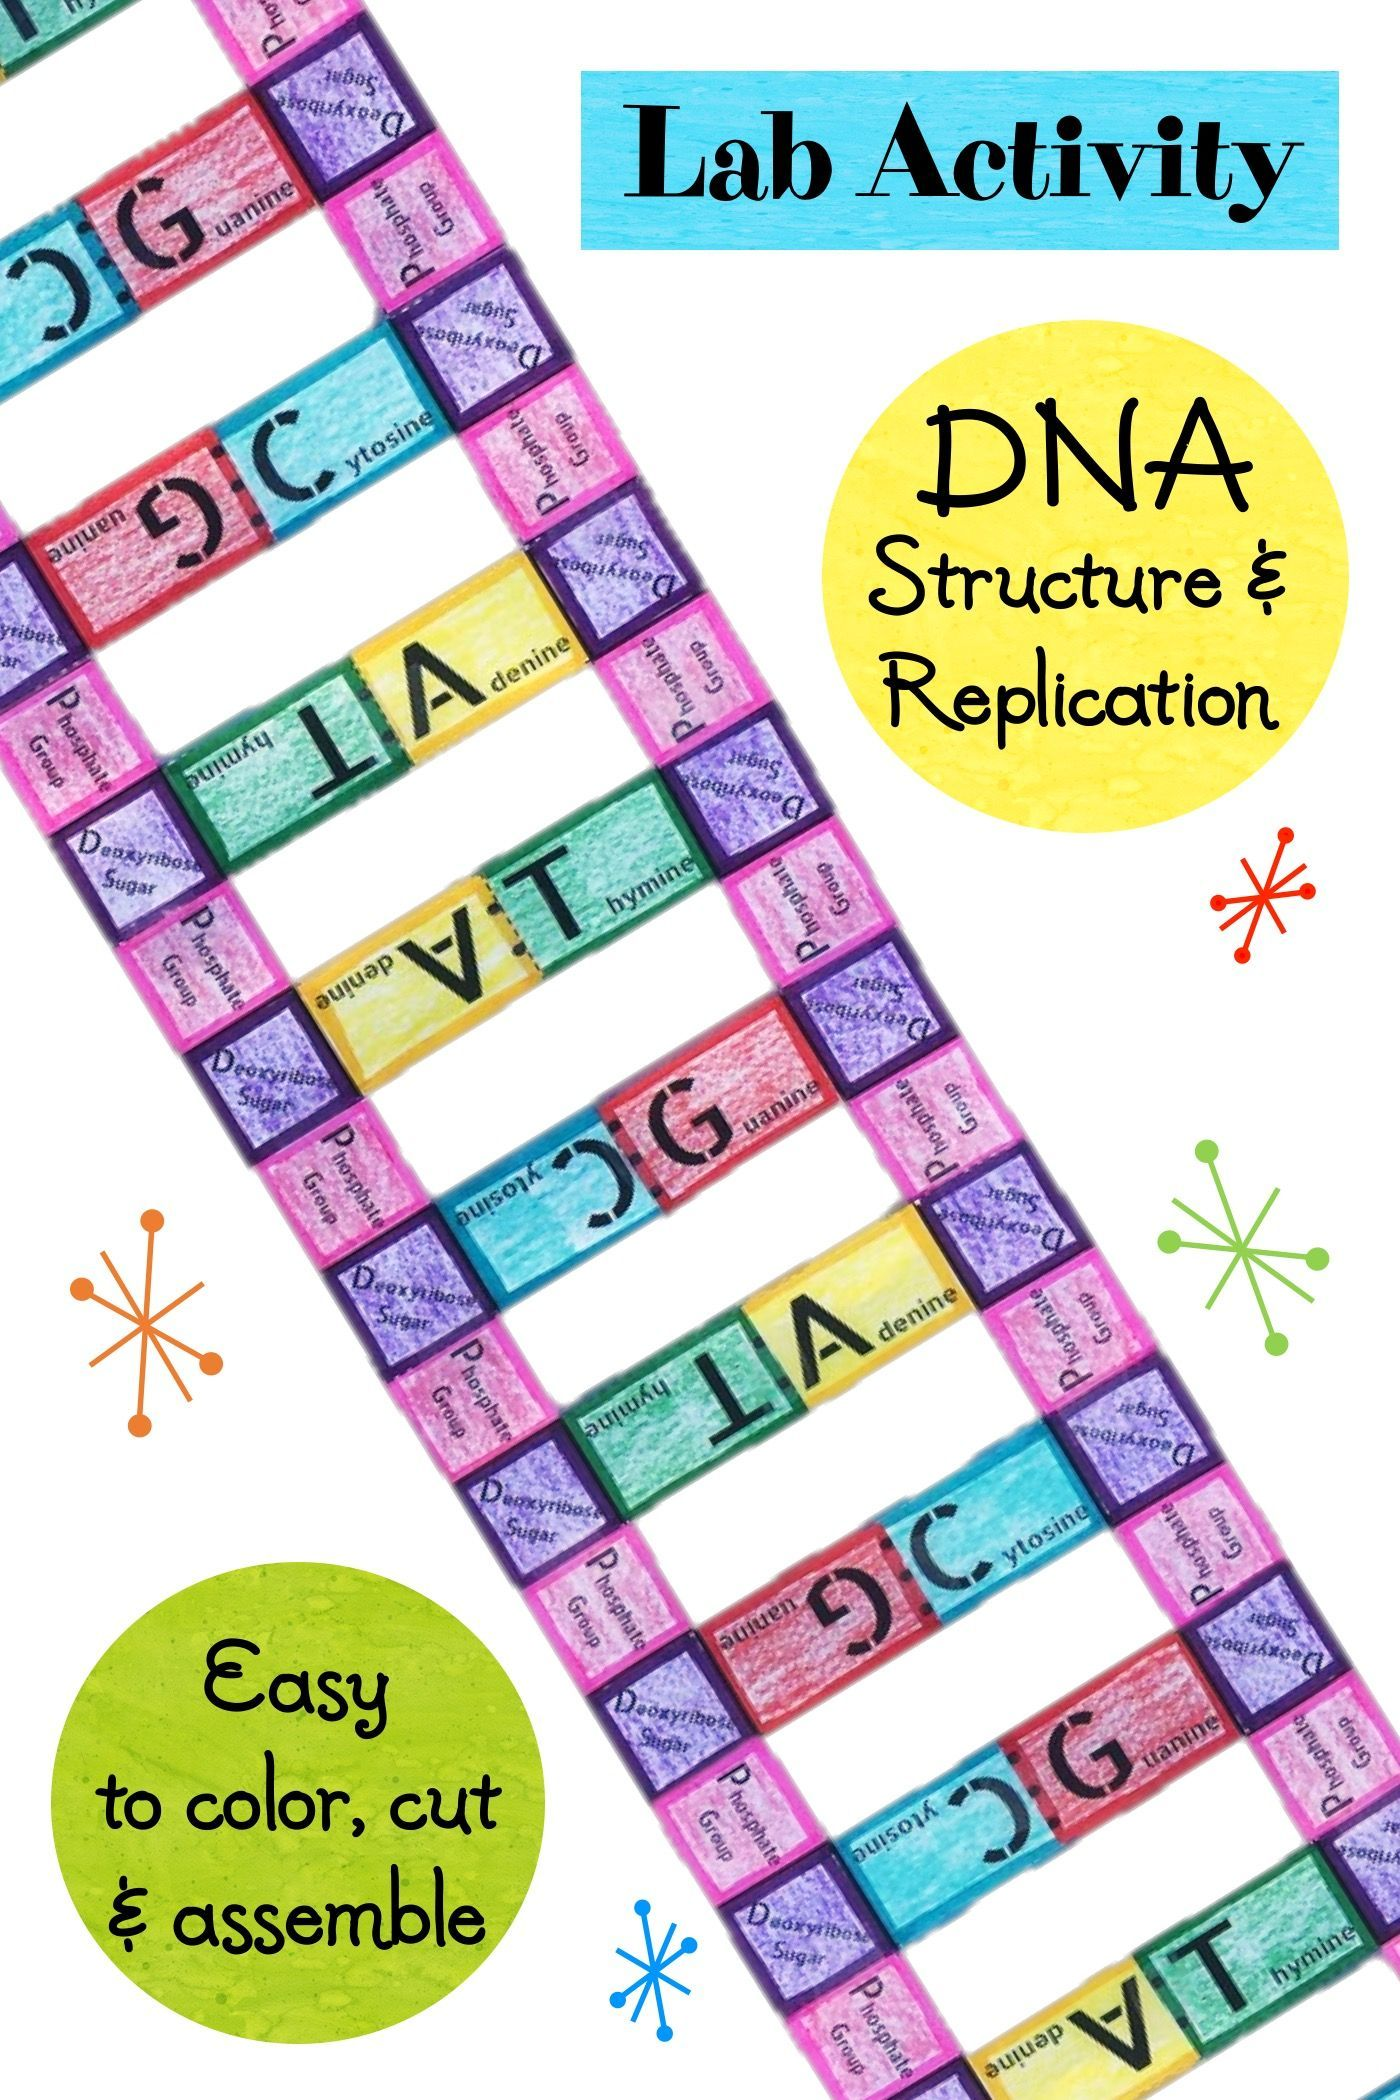 DNA Structure and Replication Lab Activity Worksheet   Lab activities [ 2100 x 1400 Pixel ]